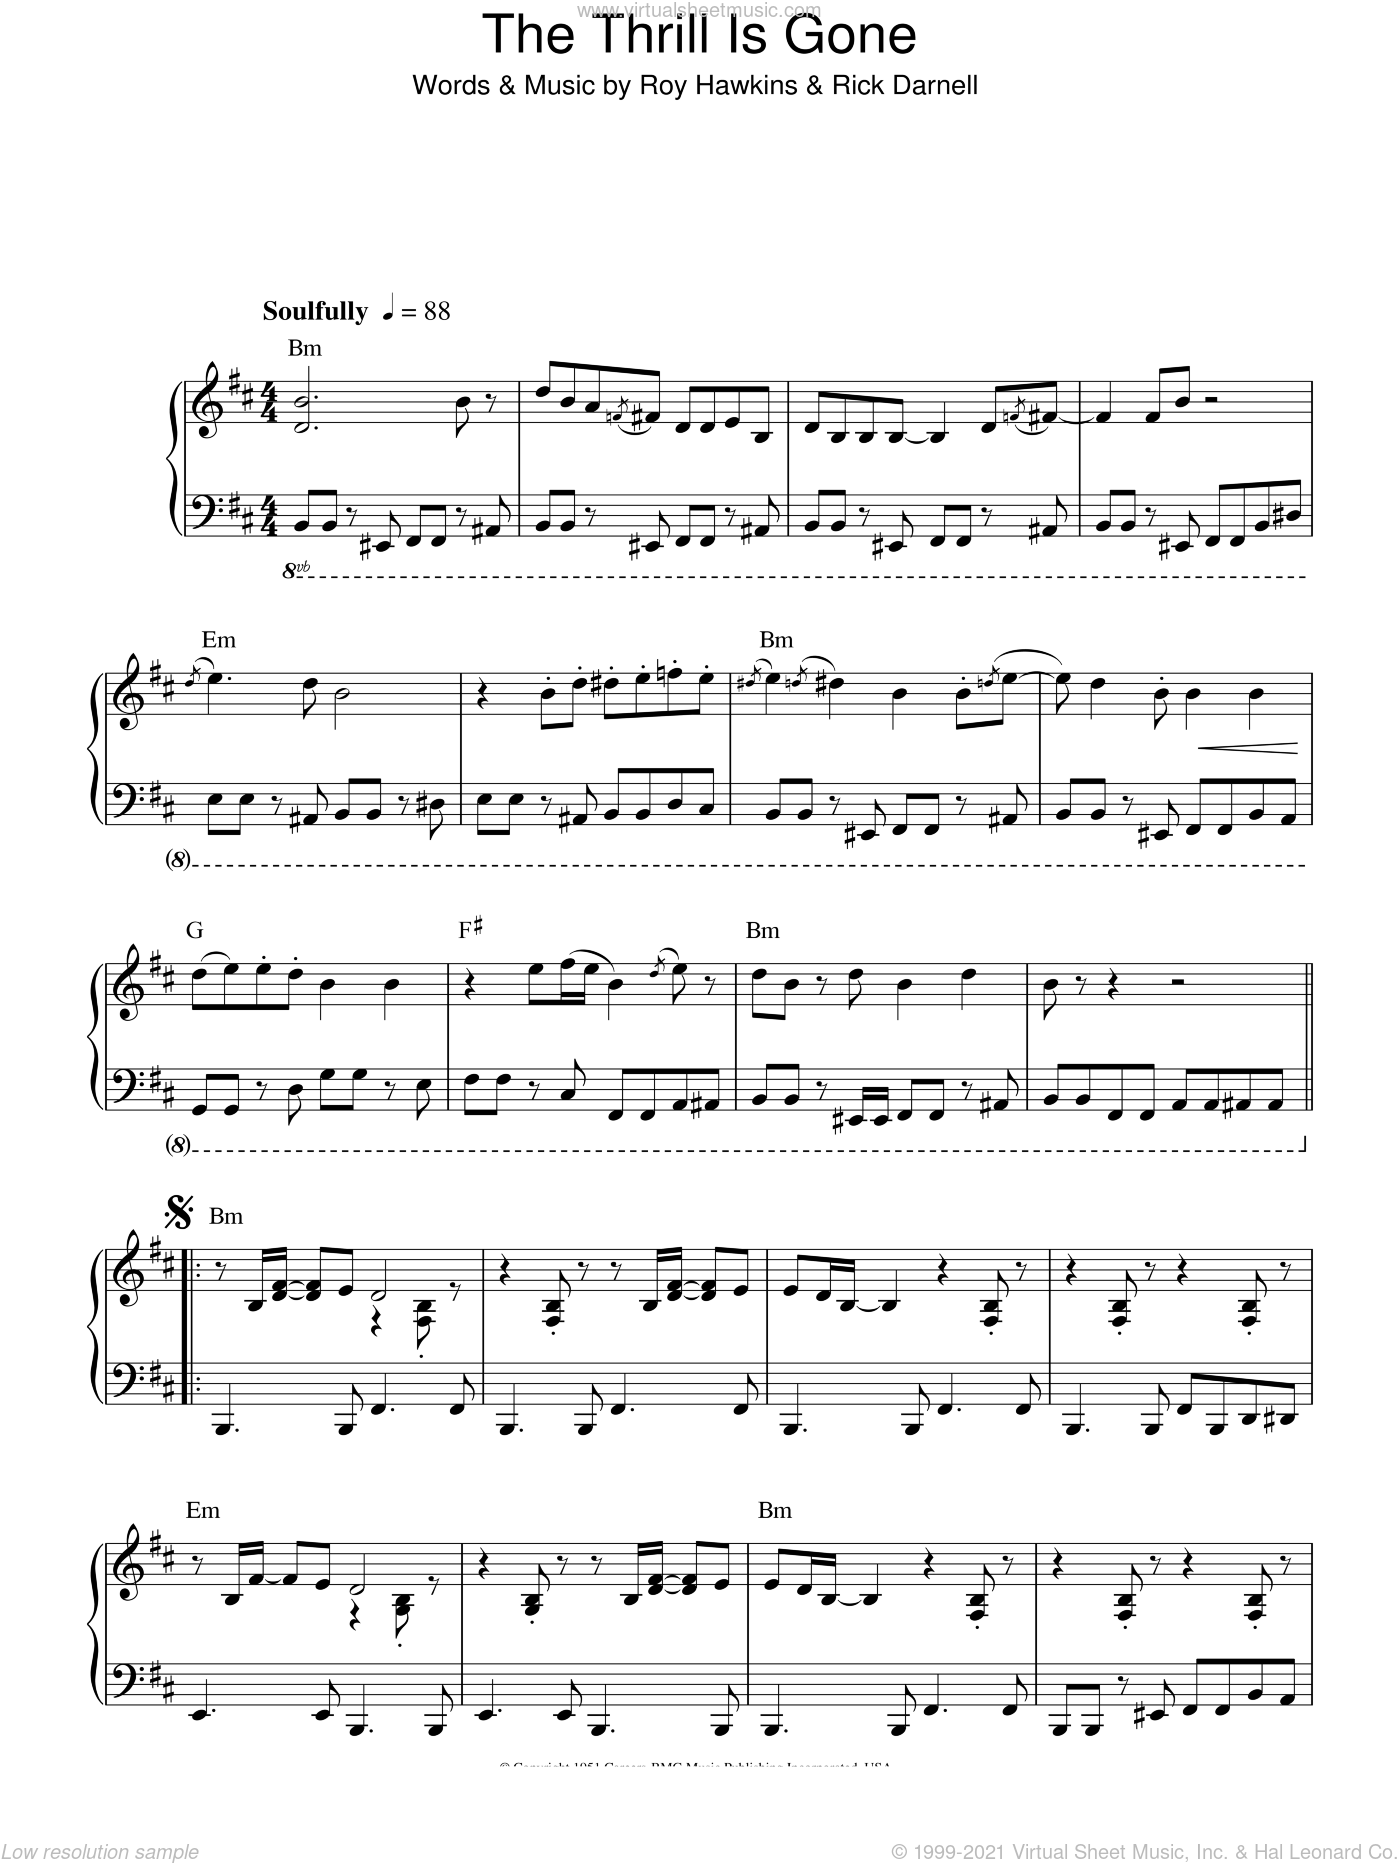 The Thrill Is Gone sheet music for piano solo by B.B. King, Rick Darnell and Roy Hawkins, intermediate skill level